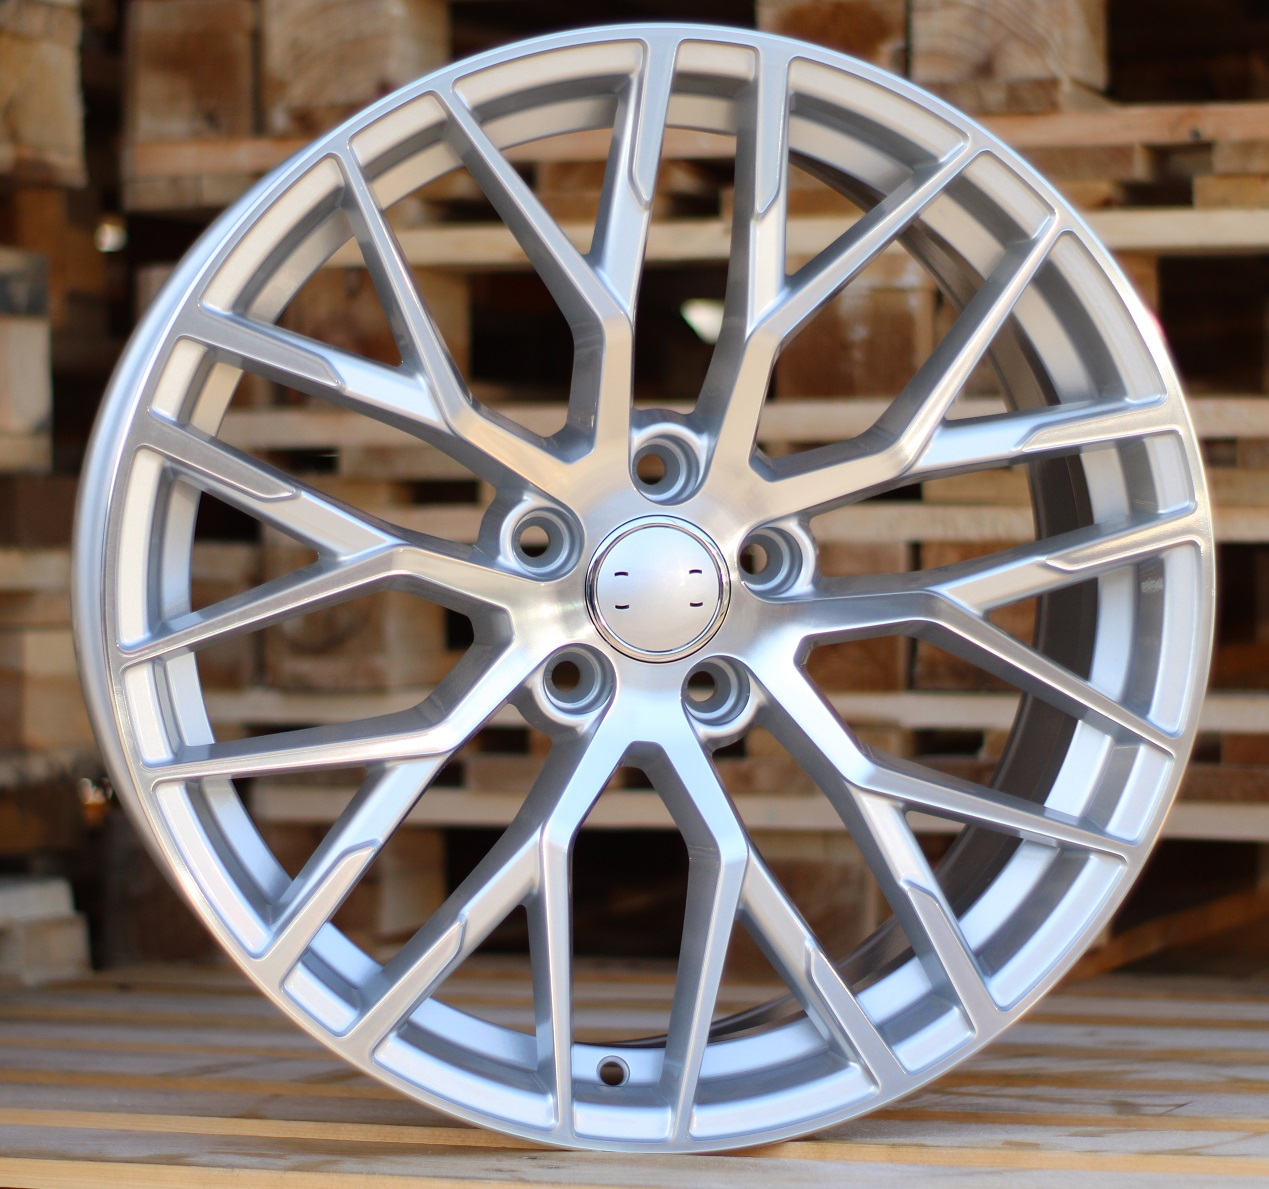 A19X8.5 5X112 ET40 66.45 XFE30 (BY1373) MS+Powder coating RWR AUD (+3eur) (K4) 8.5x19 ET41 5x112